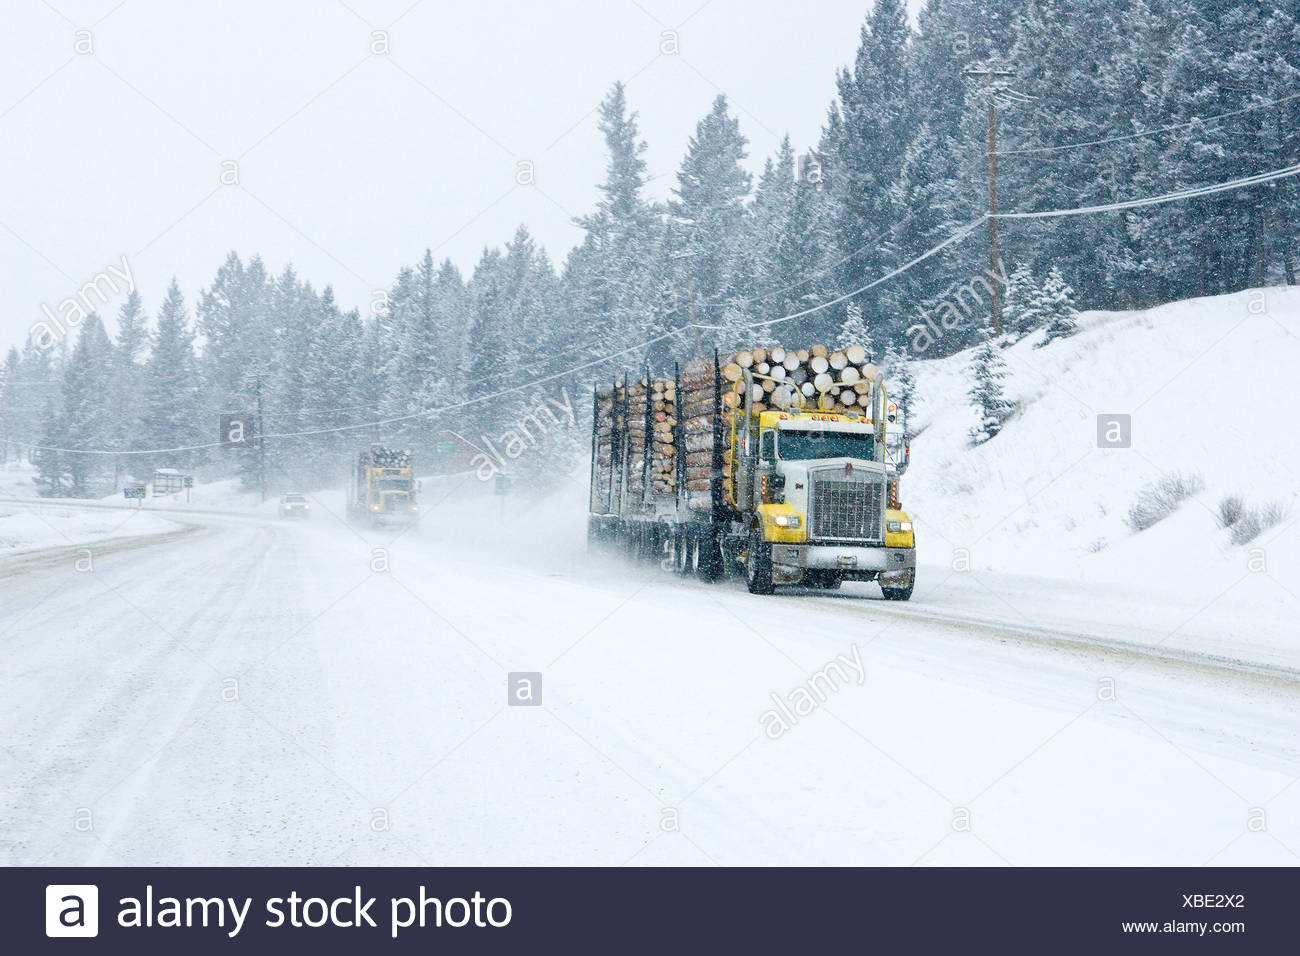 Winter Roads Stock Photos & Winter Roads Stock Images - Alamy